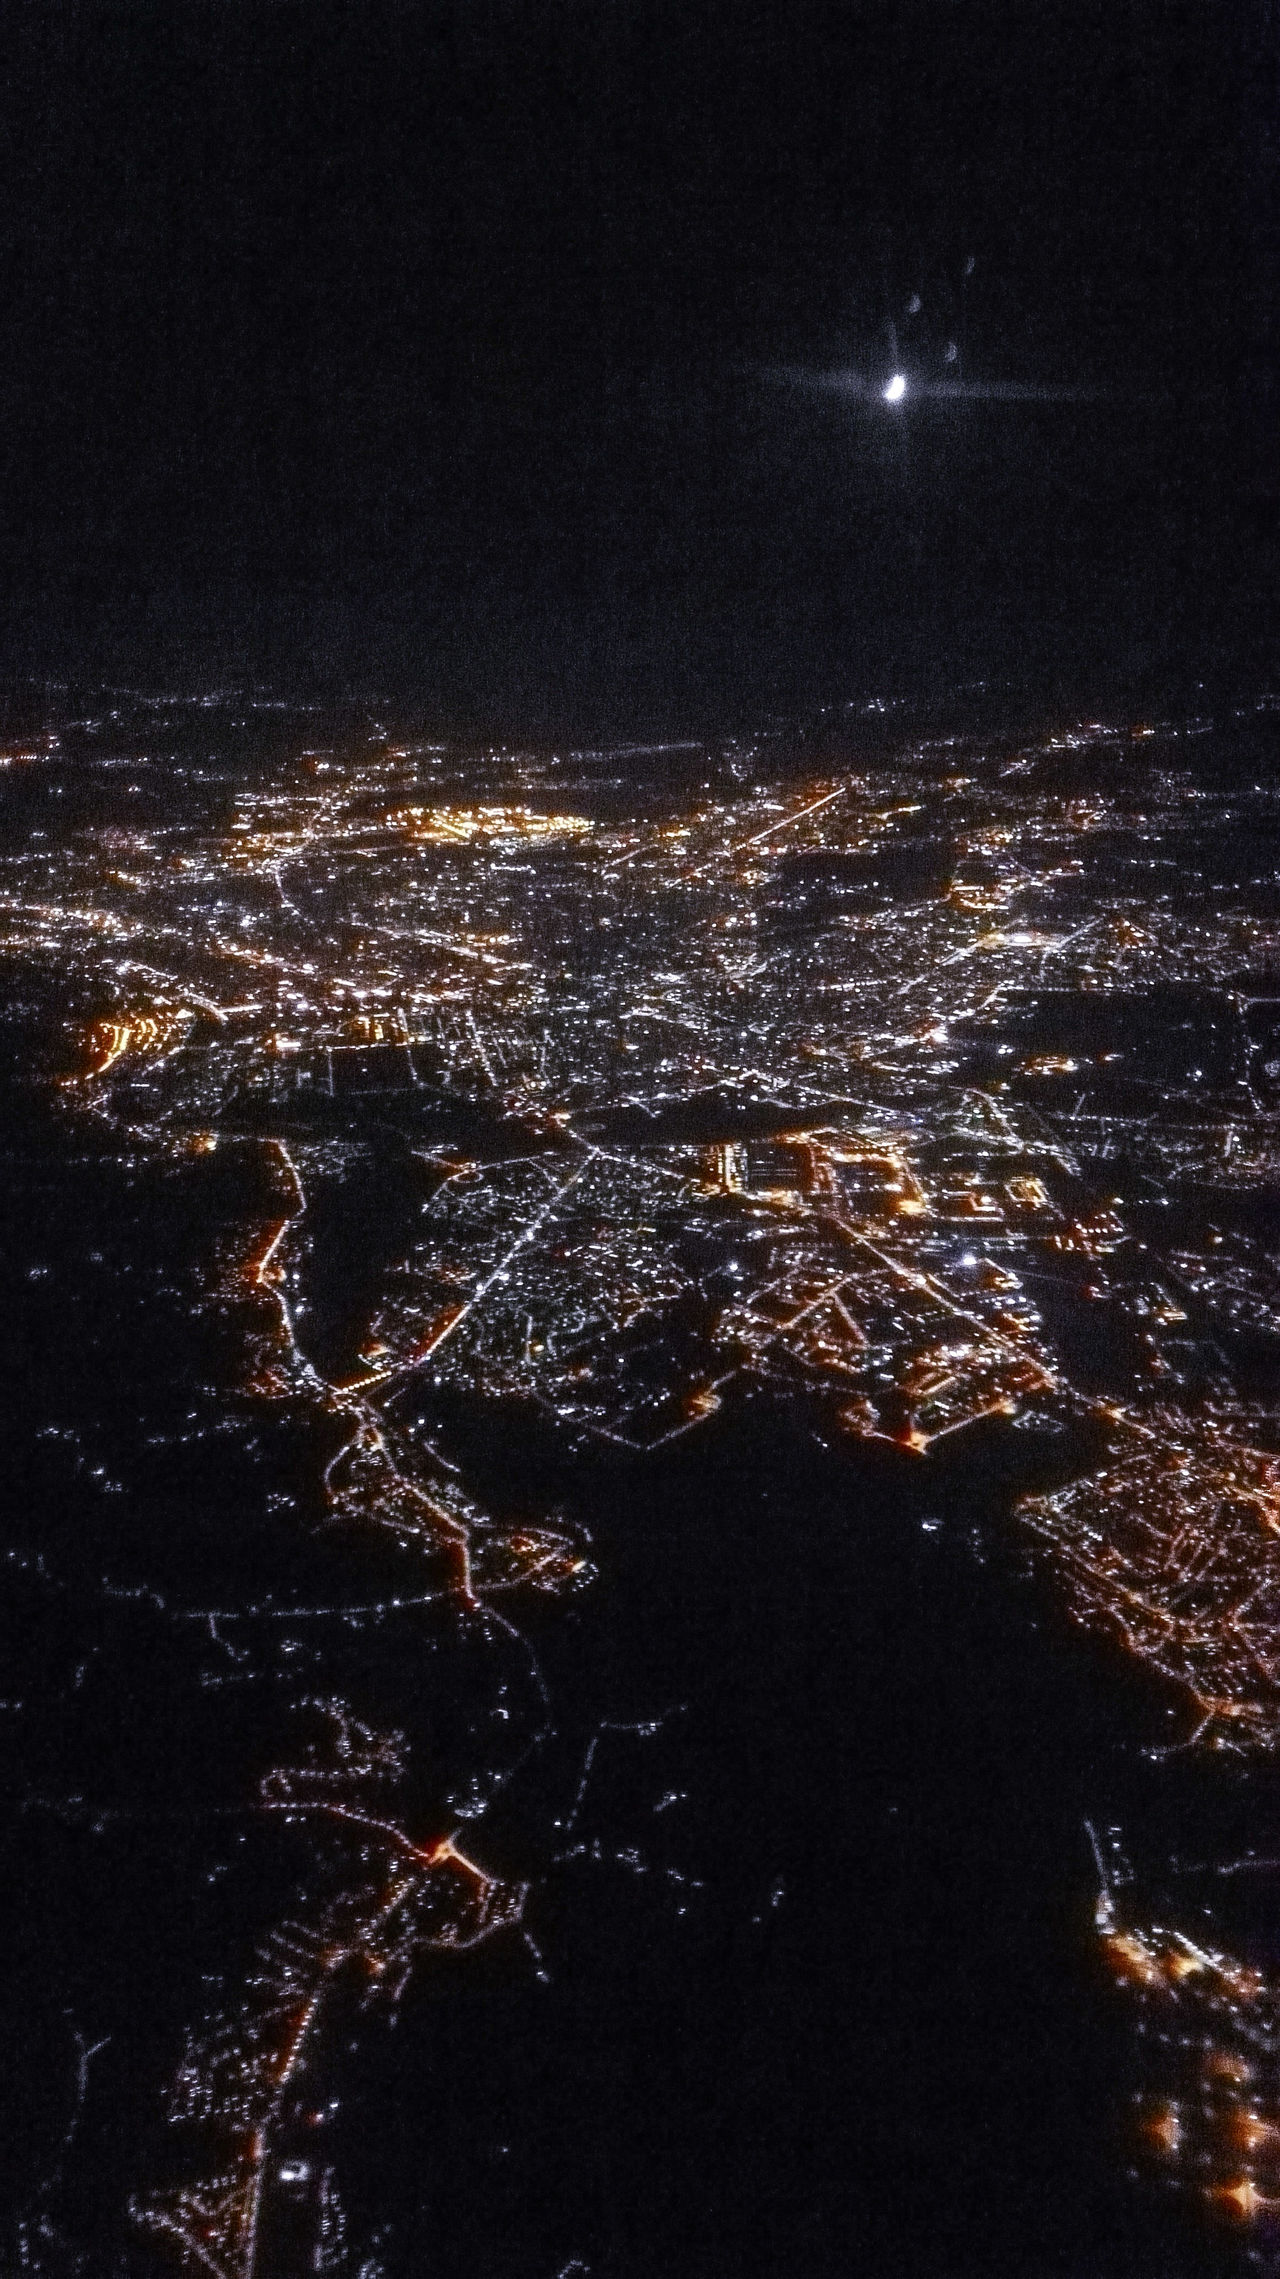 Night Illuminated Cityscape Aerial View Crowded City Sky City Life Outdoors Dark No People Scenics